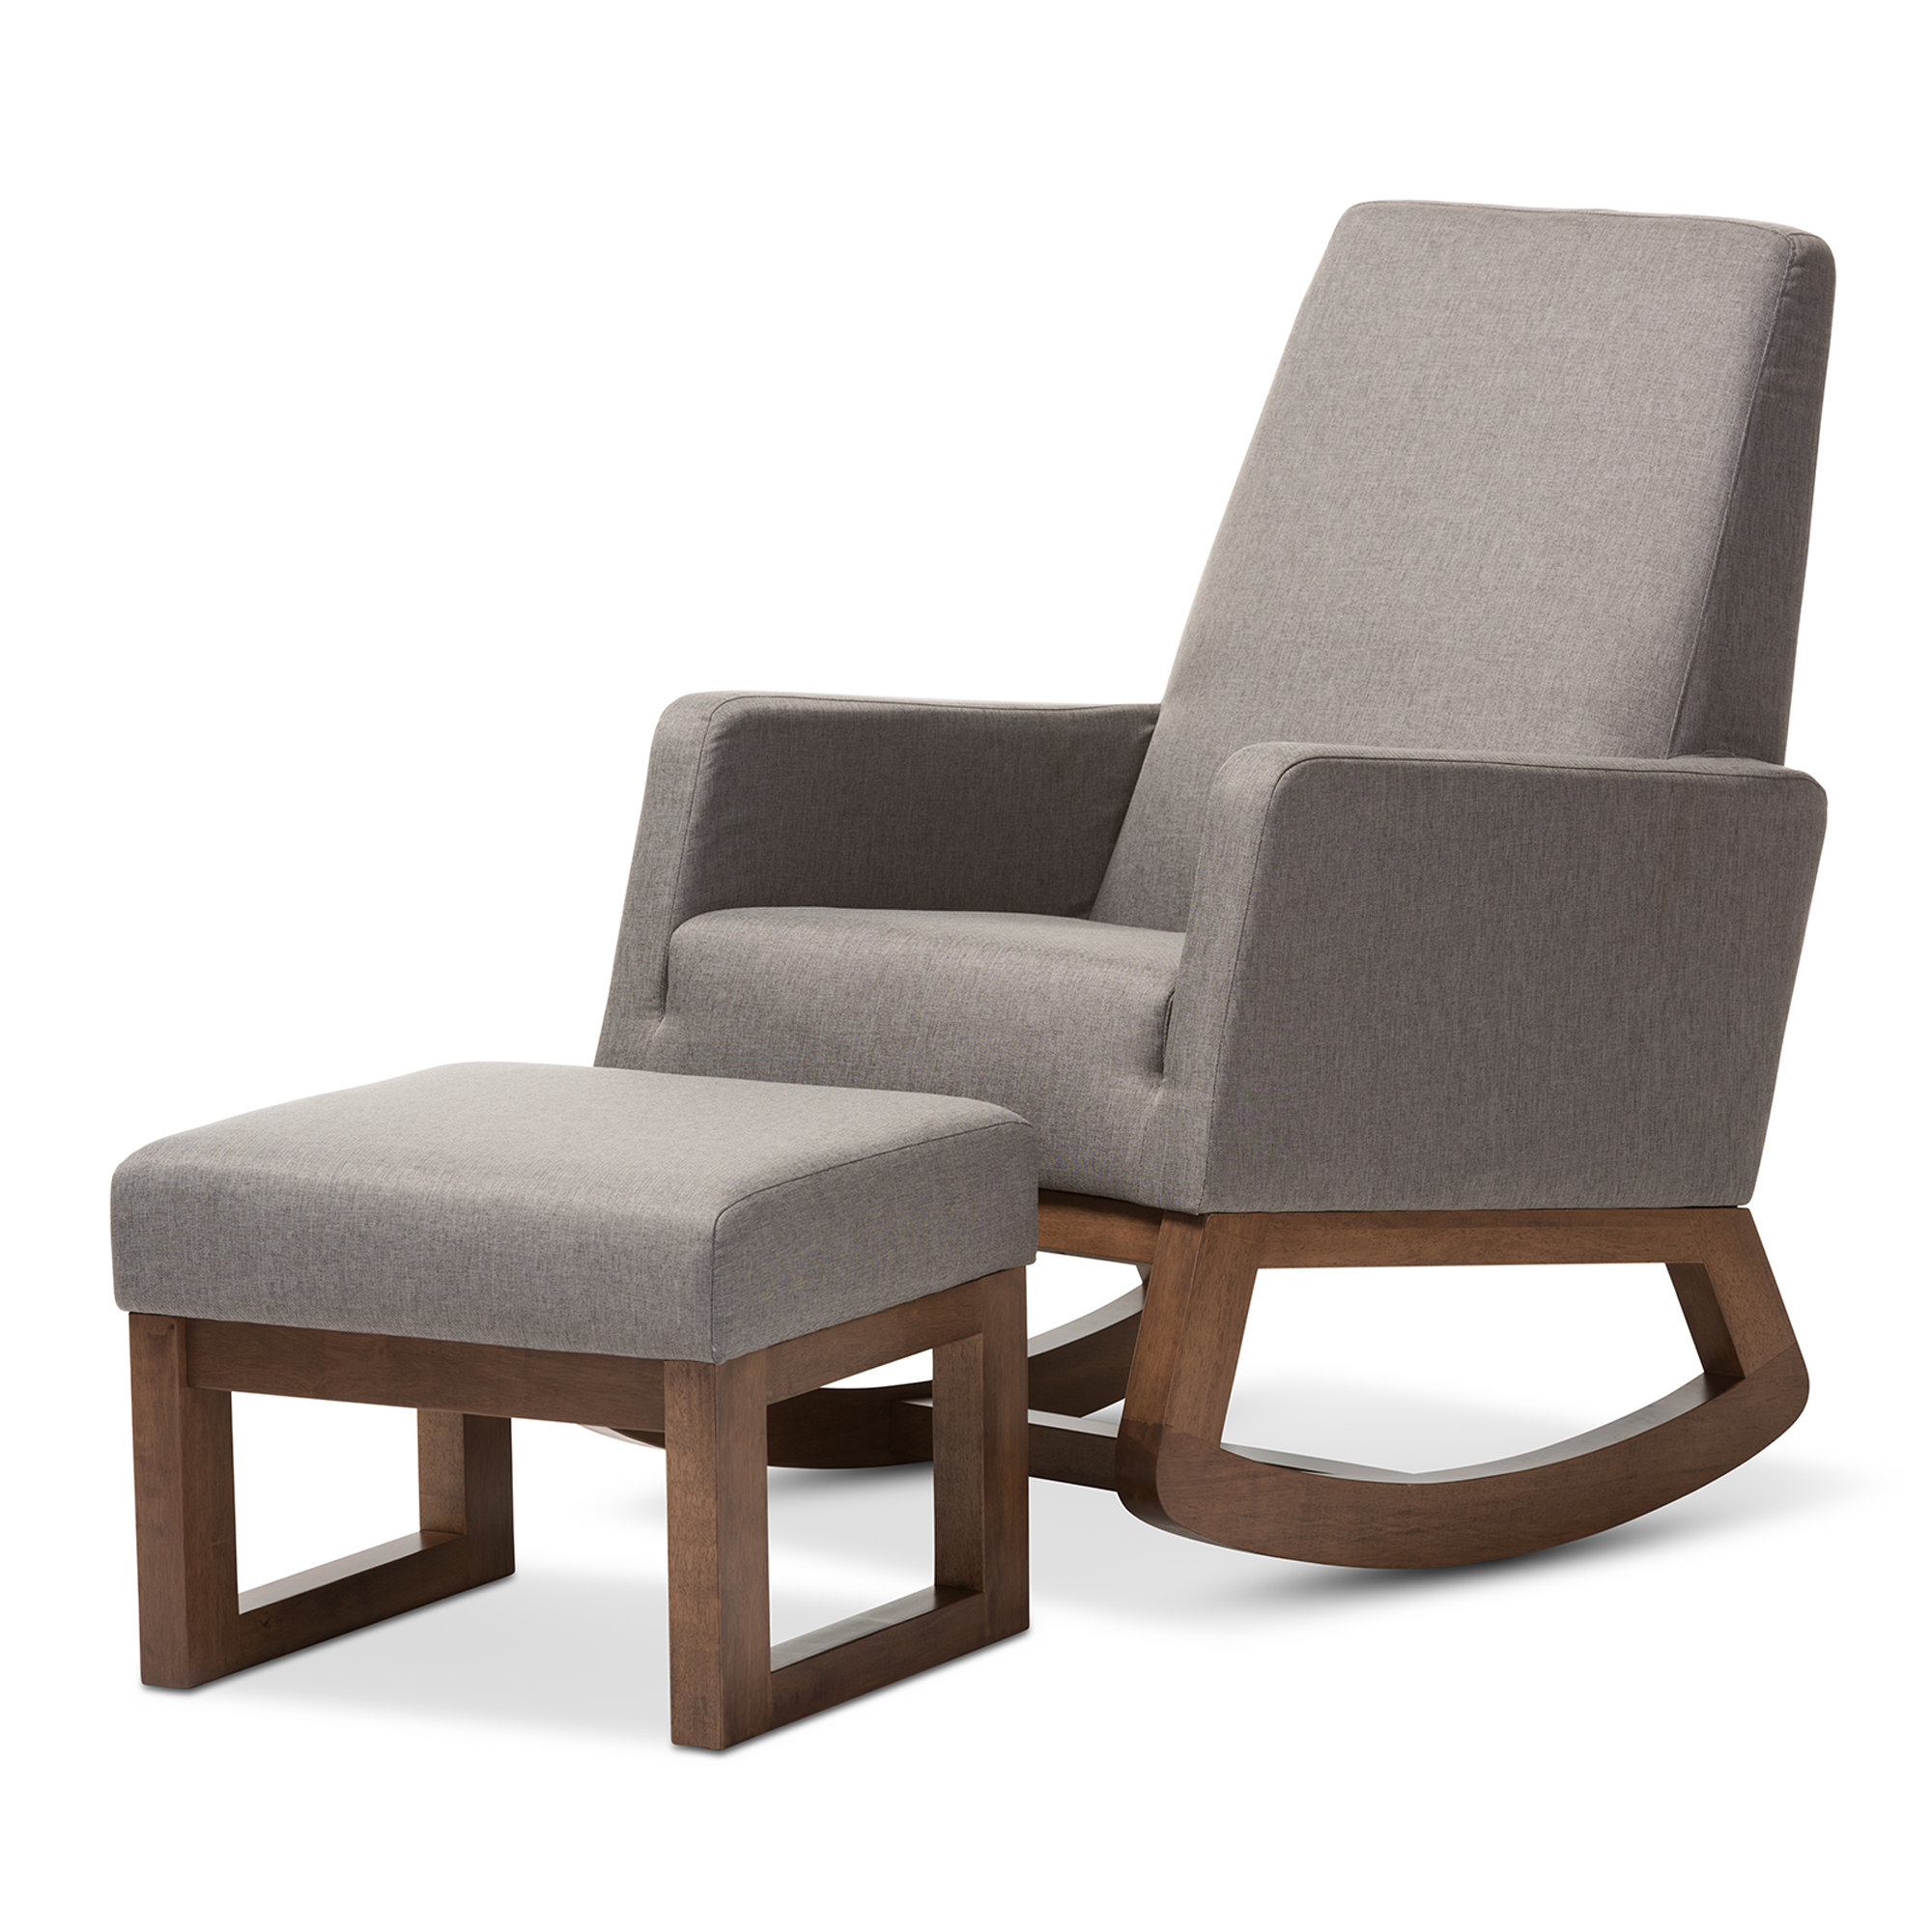 Inspiration about Modern & Contemporary Upholstered Rocking Chairs | Allmodern In Rocking Chairs In Linen Fabric With Medium Espresso Base (#15 of 20)